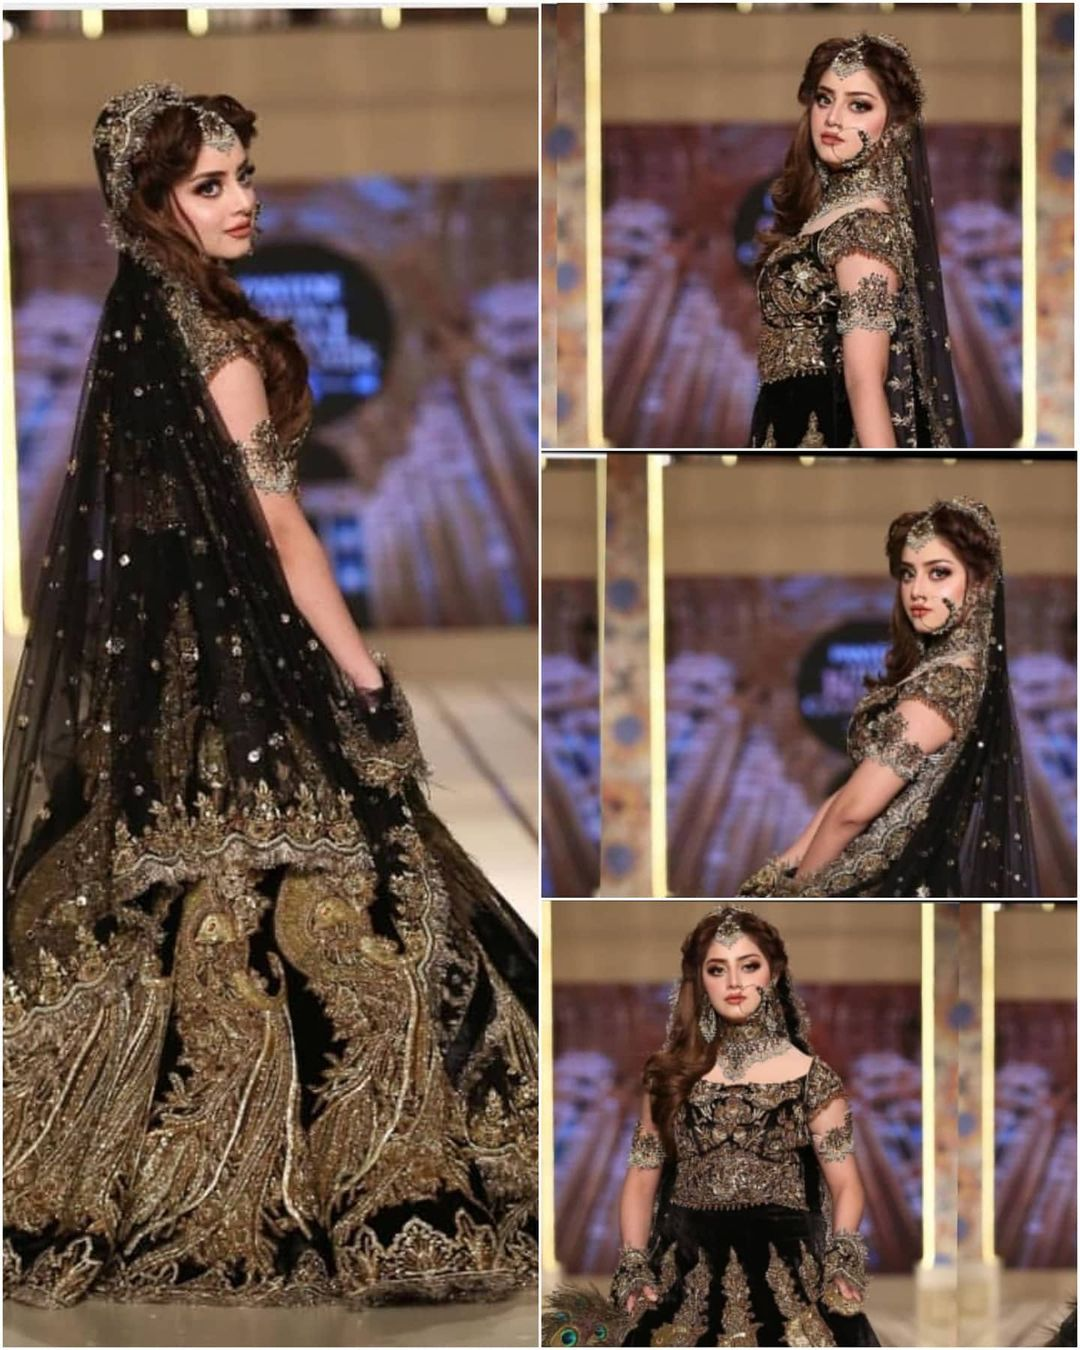 Alizeh Shah Steals The Show at Bridal Couture Week 2021 - Pictures!